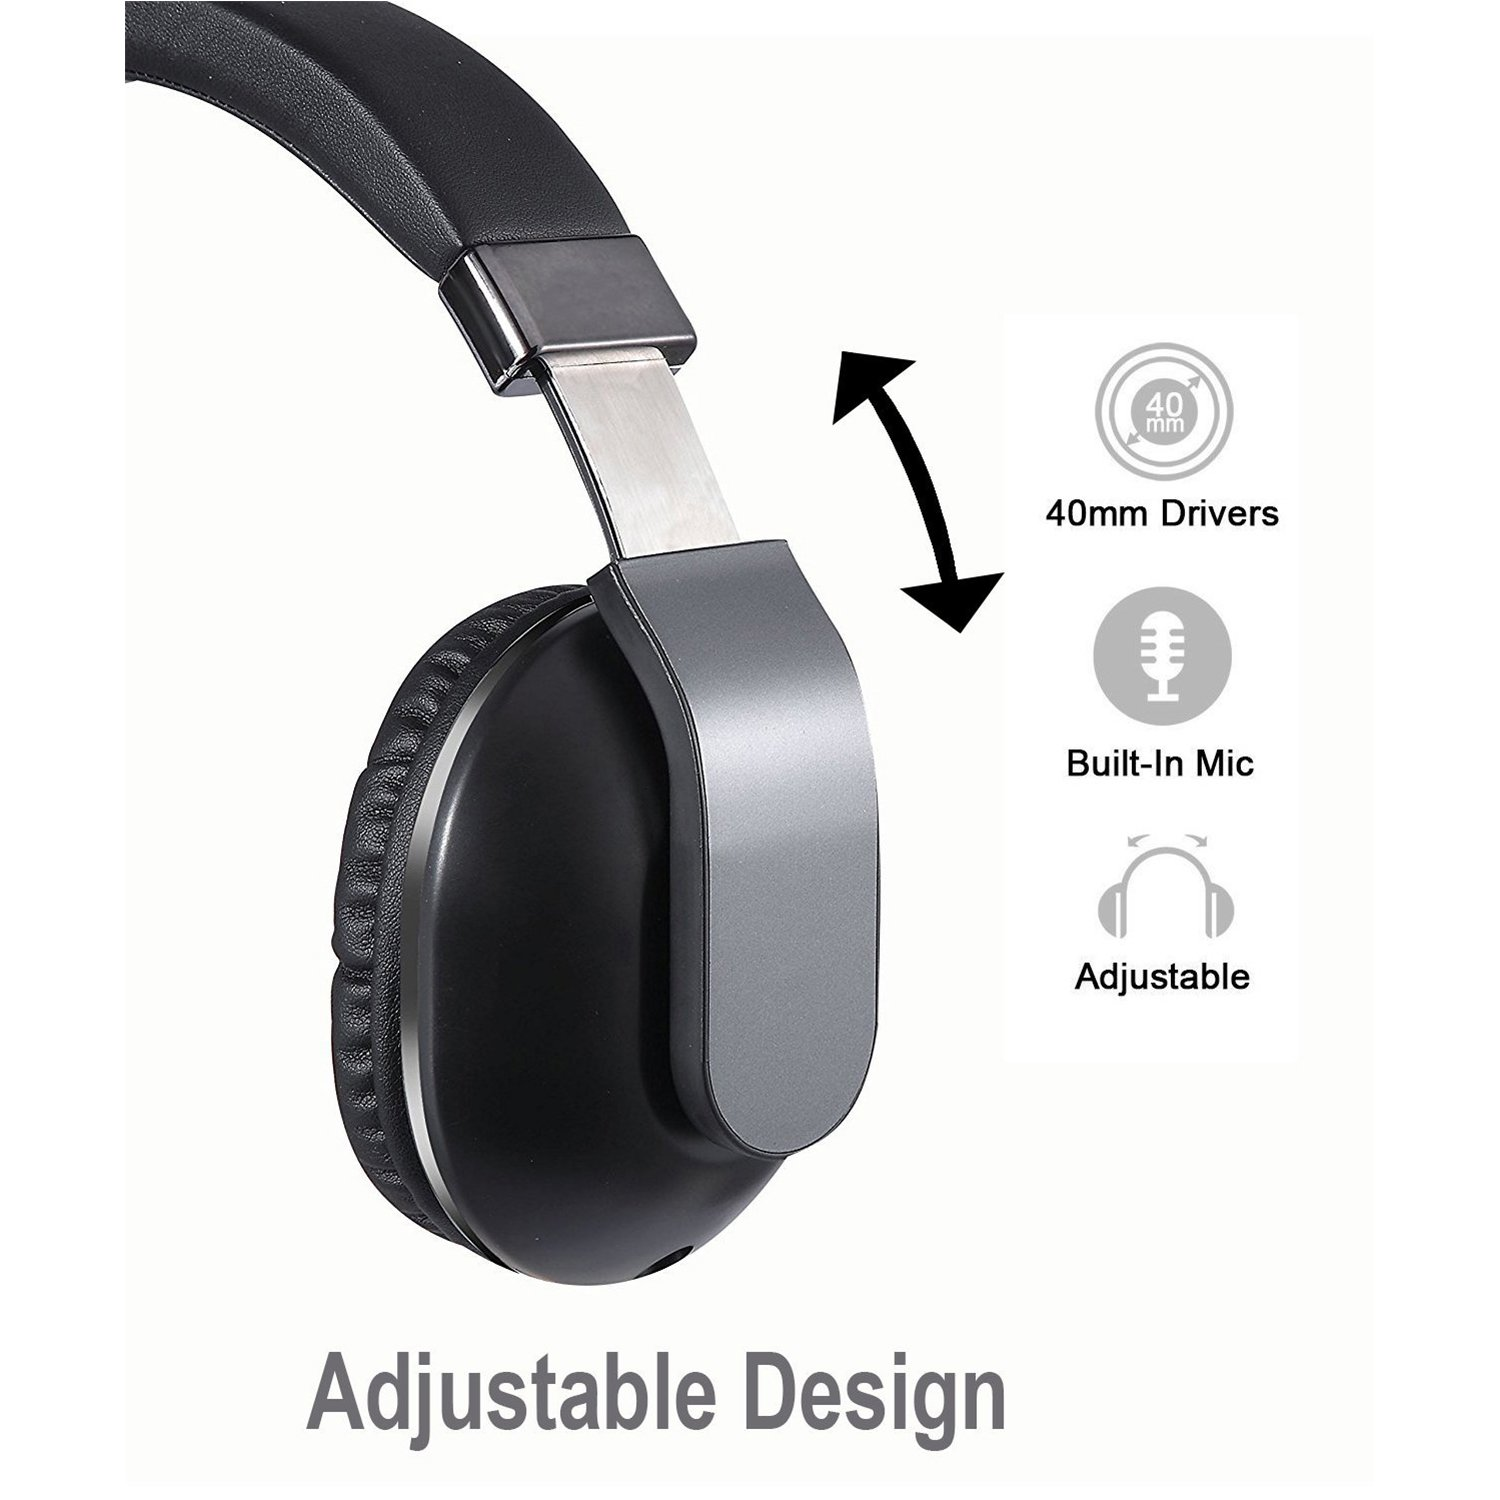 770 Silver JBUNION Bluetooth Headphones Over Ear Wireless Headset Wired and Wireless Headphones with Big Noise Isolation Memory-Protein Earmuffs for Cell Phone//TV//PC